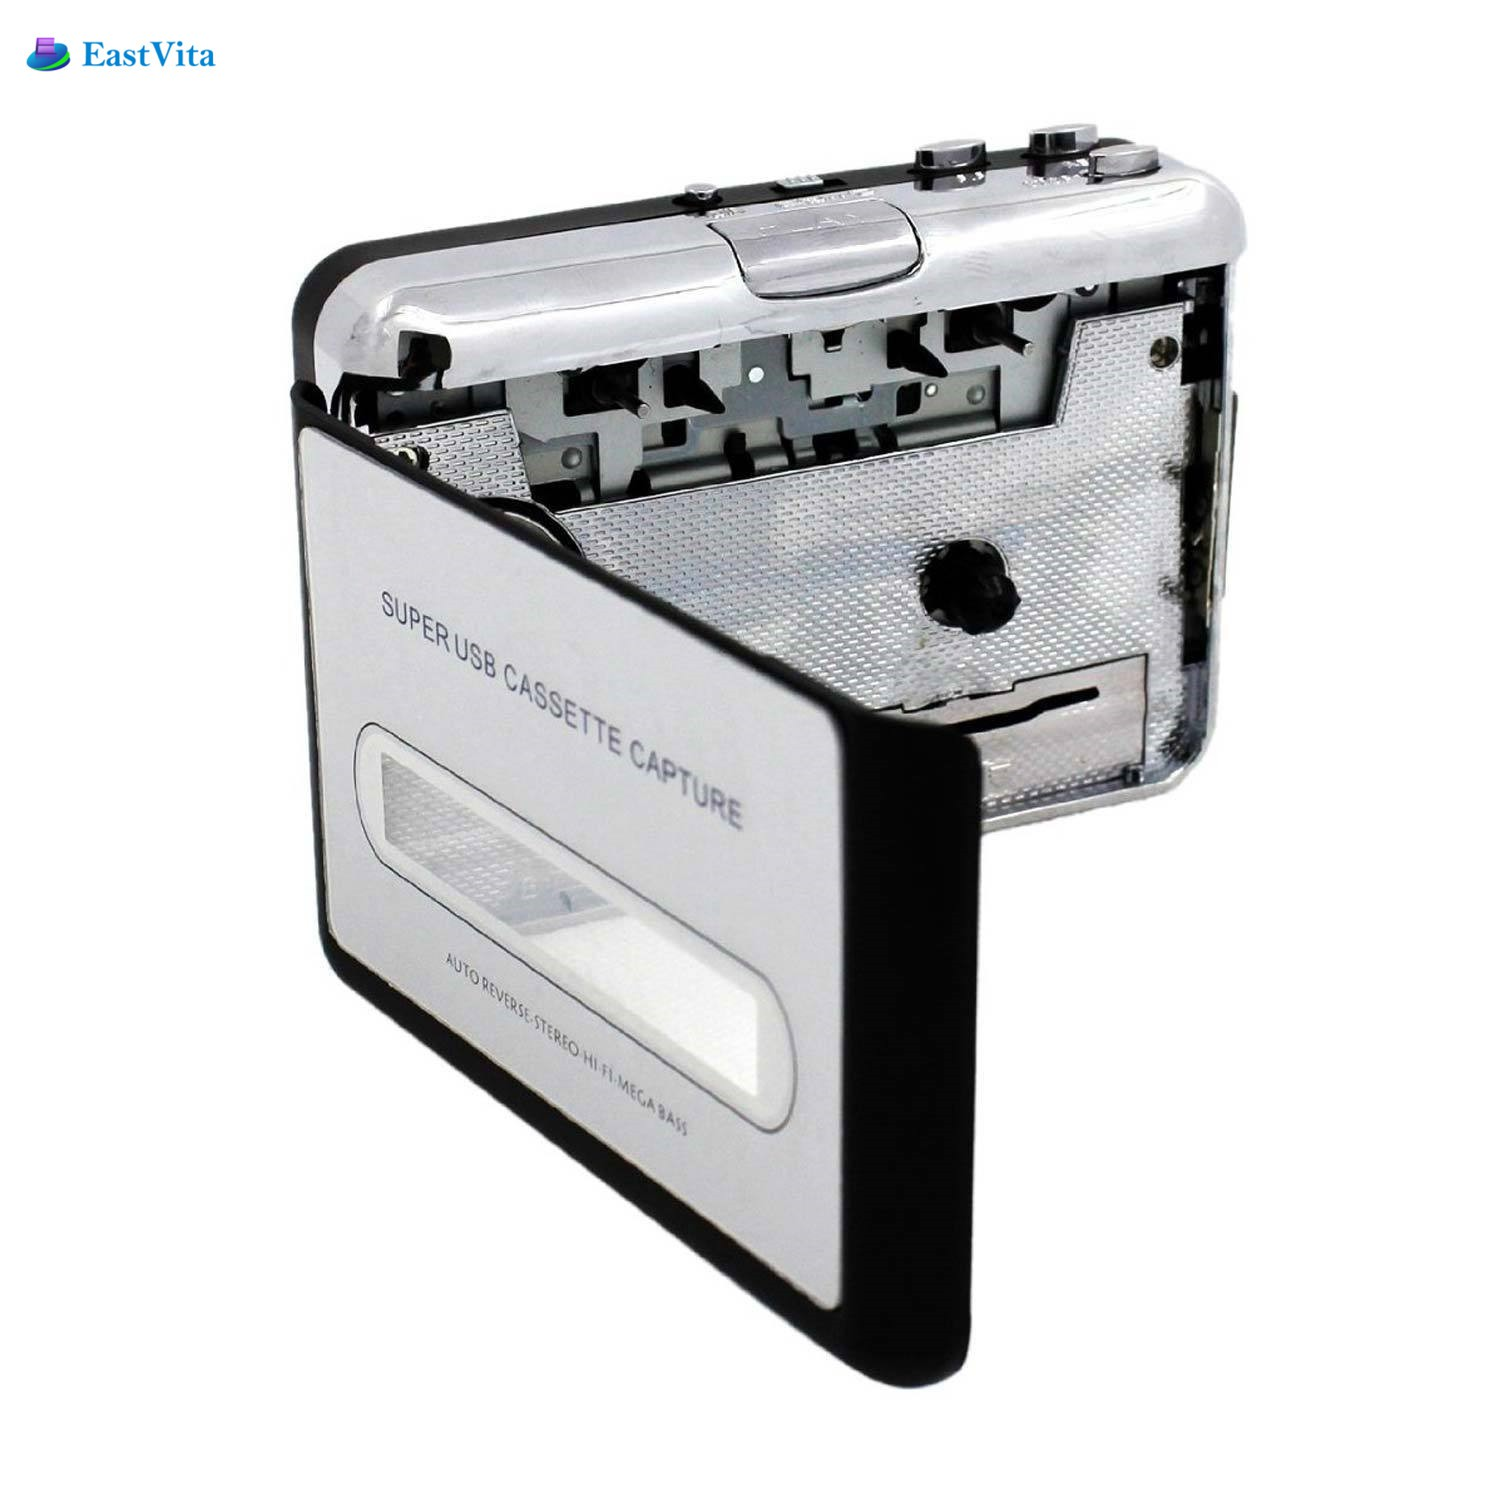 LumiParty USBcassette capture Classic Portable USB Cassettes-to-MP3 Converter Capture Stereo Audio Music Player Tape to PC Porta ...